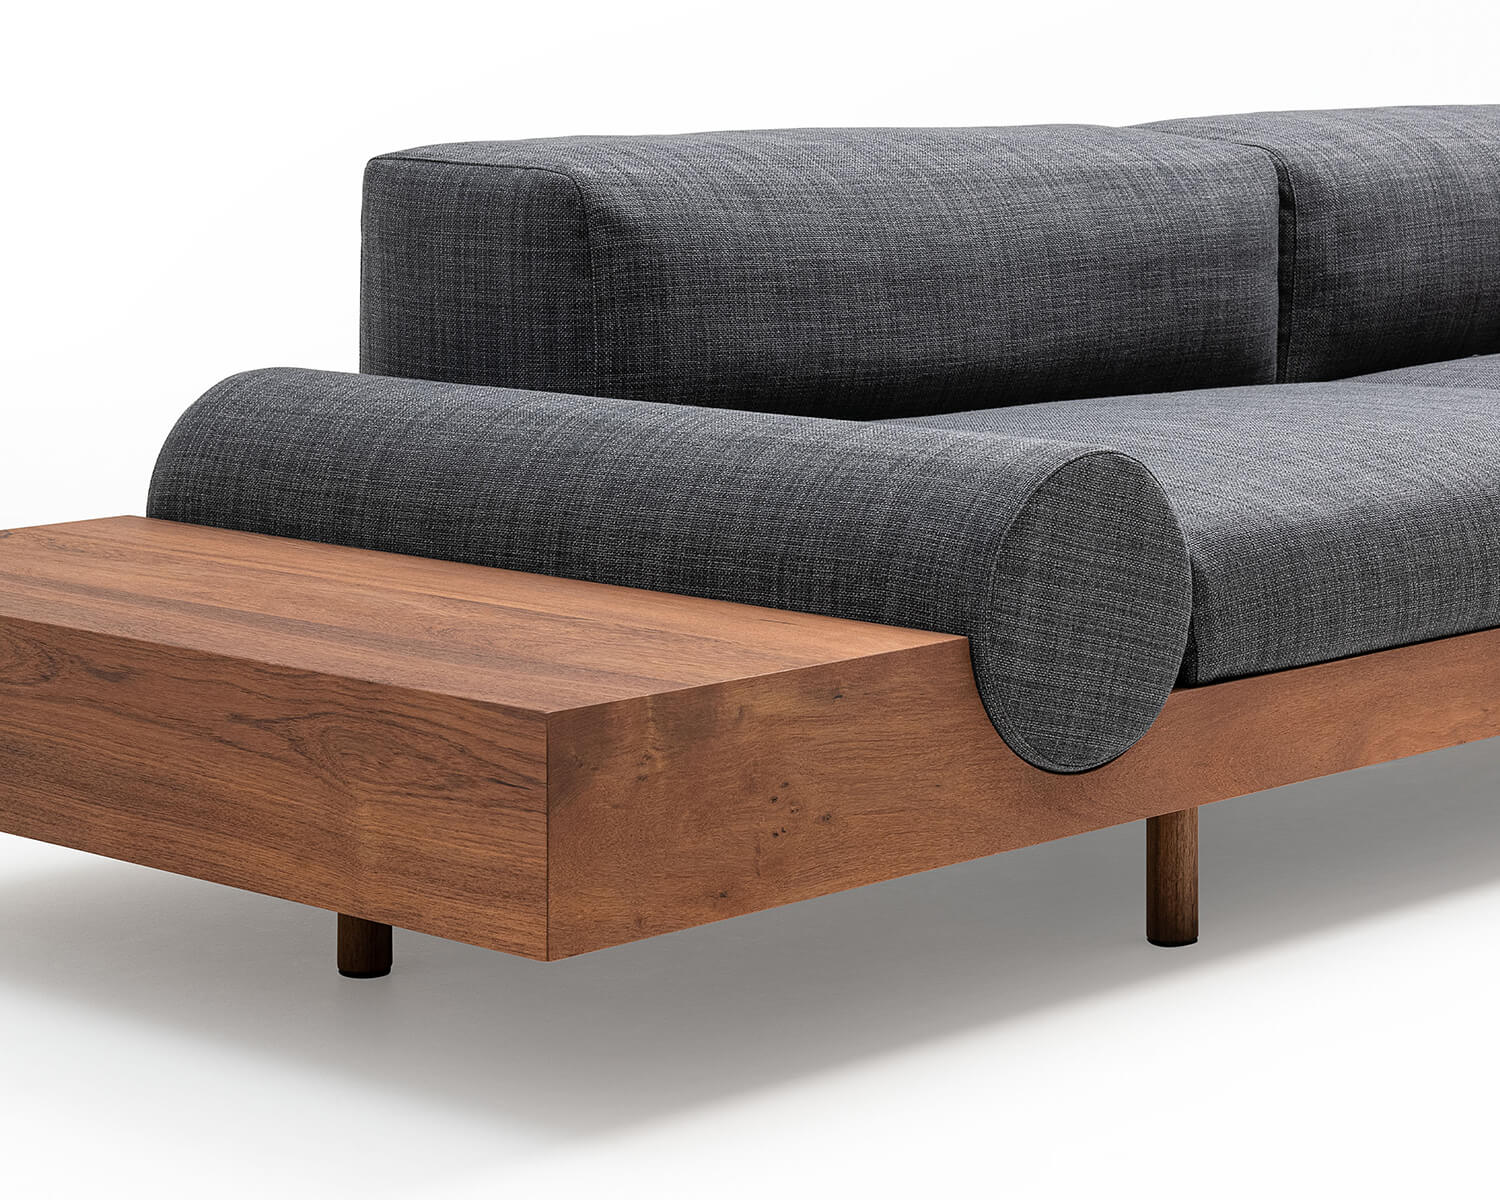 Close-up view of Kasbah modular sectional chaise in grey fabric showing the bolster cushion and teak platform